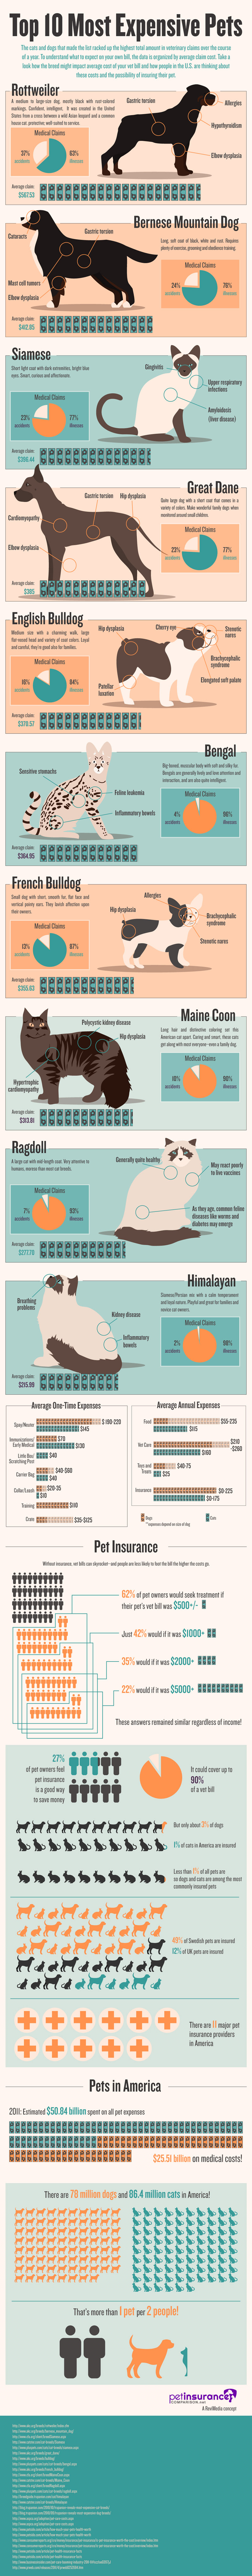 Top 10 most expensive pets